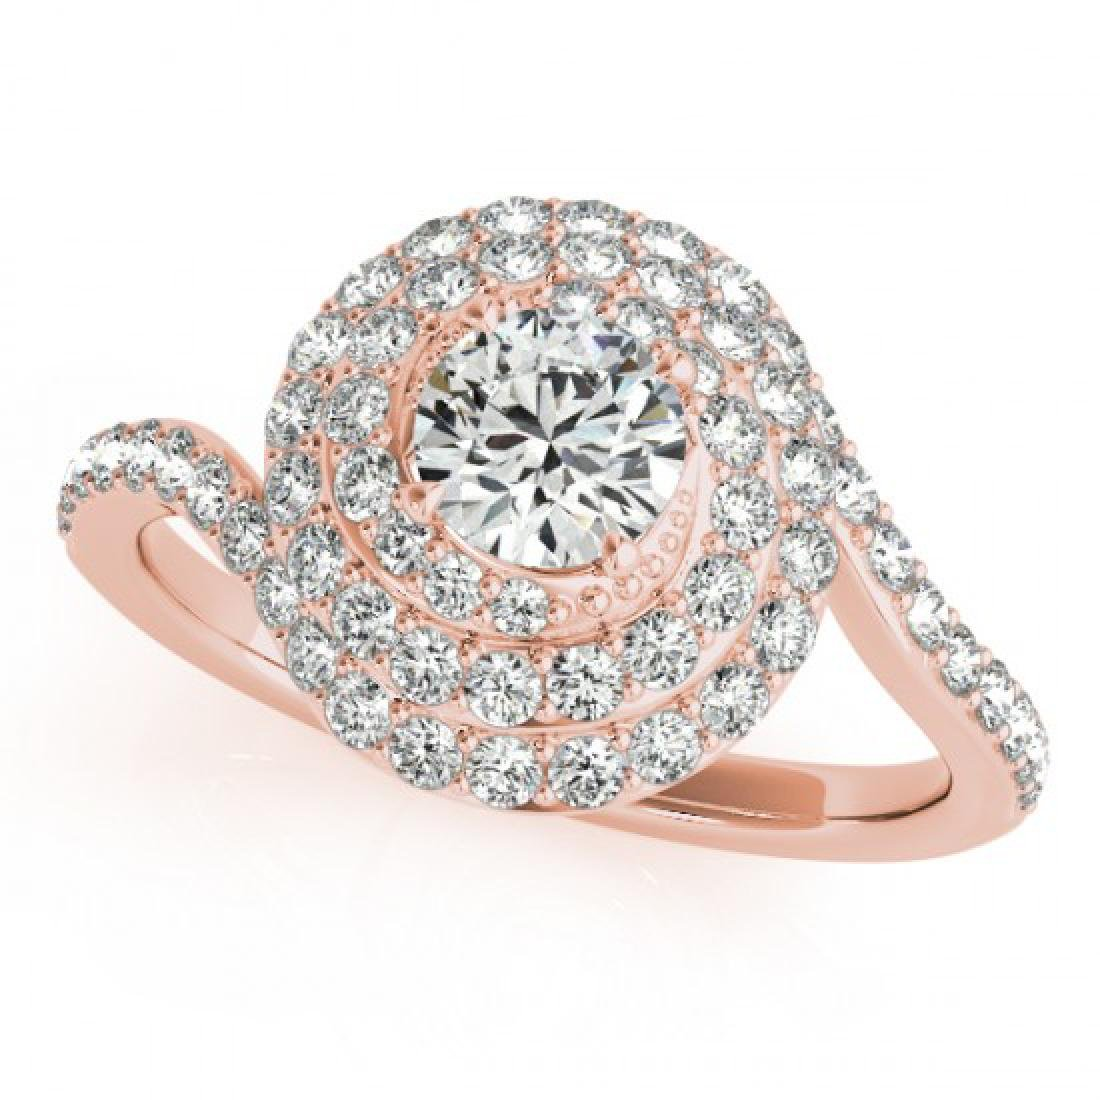 1.54 CTW Certified VS/SI Diamond Solitaire Halo Ring